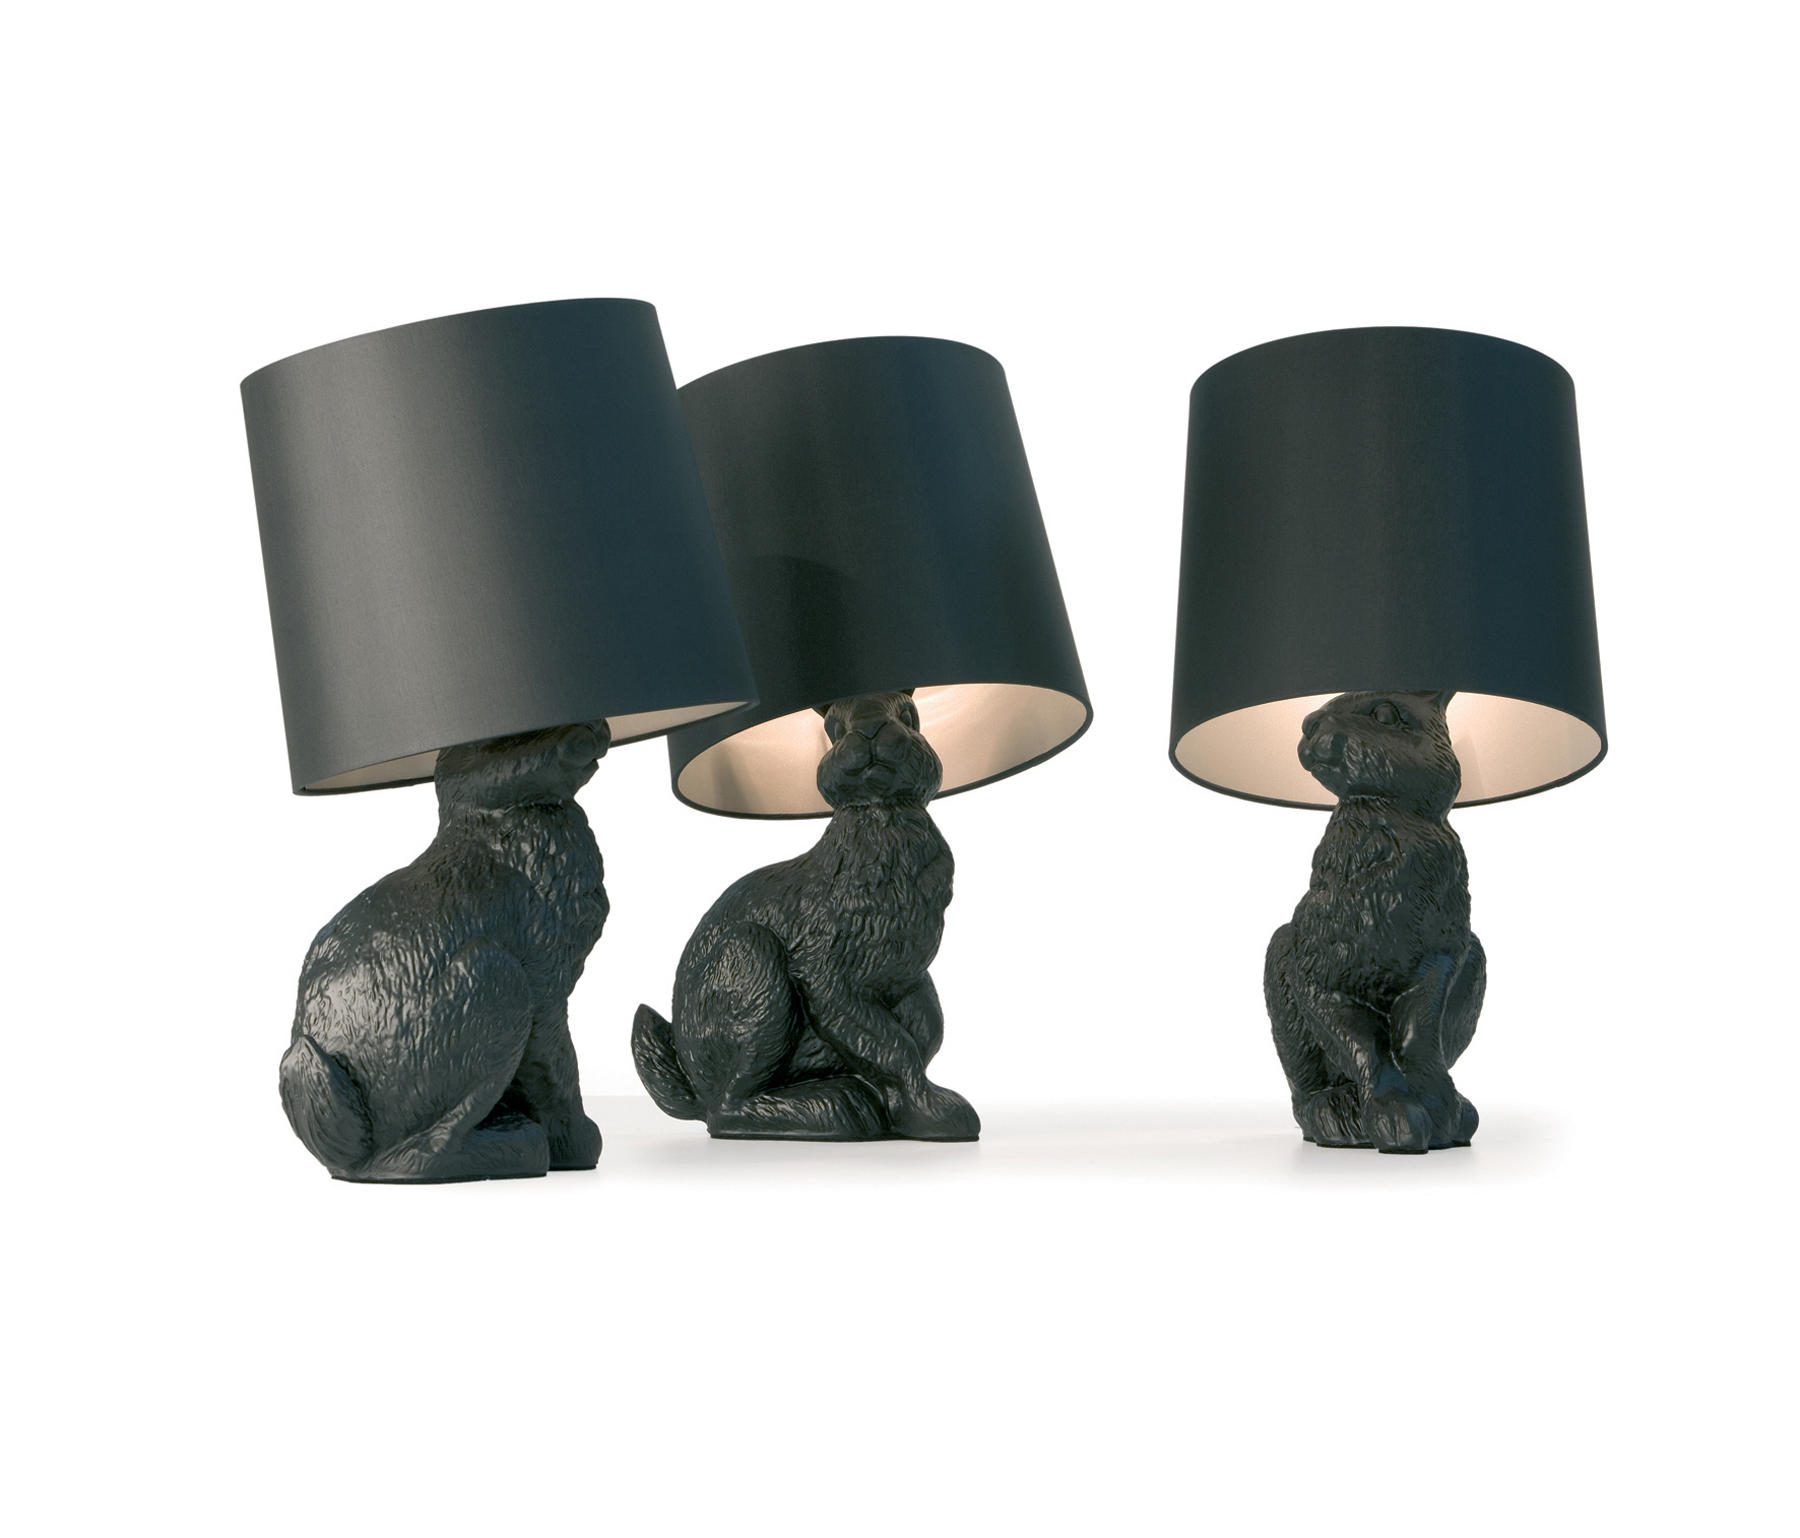 HORSE LAMP - General lighting from moooi | Architonic for Moooi Lamp Horse  61obs